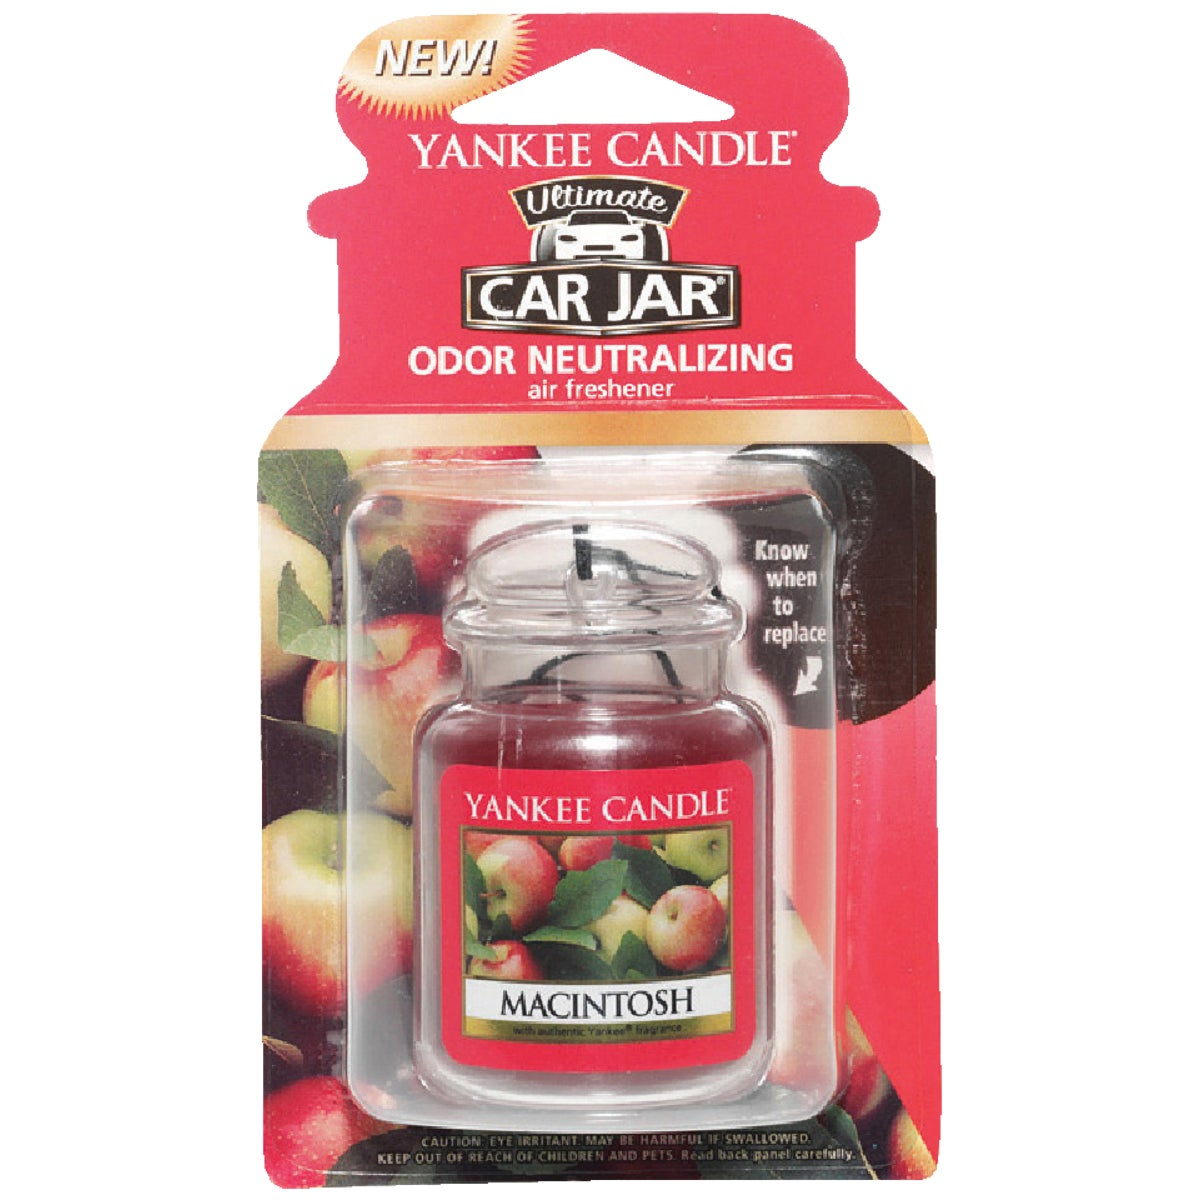 MACINTOSH CAR JAR ULTMT - 1220885 by Yankee Candle Co